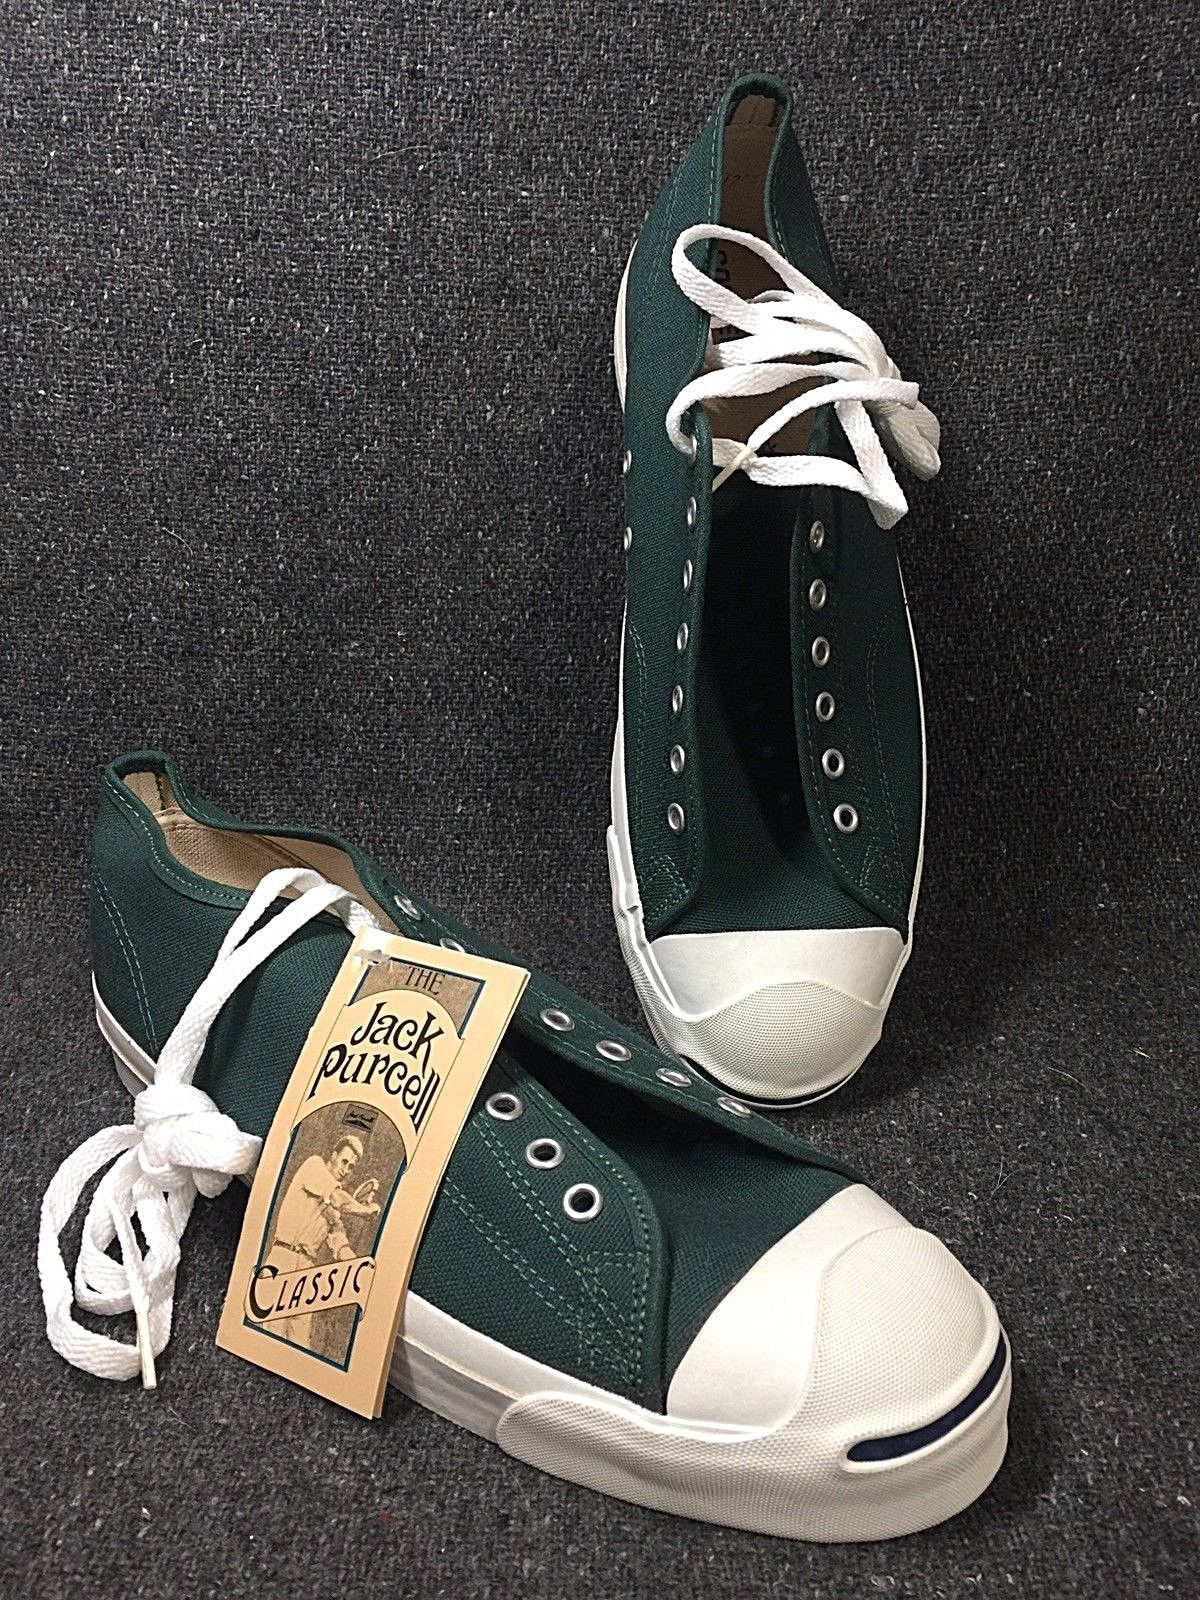 64976f8d9d58 Details about Vintage Converse Jack Purcell 70 s 80 s AUTHENTIC MADE ...